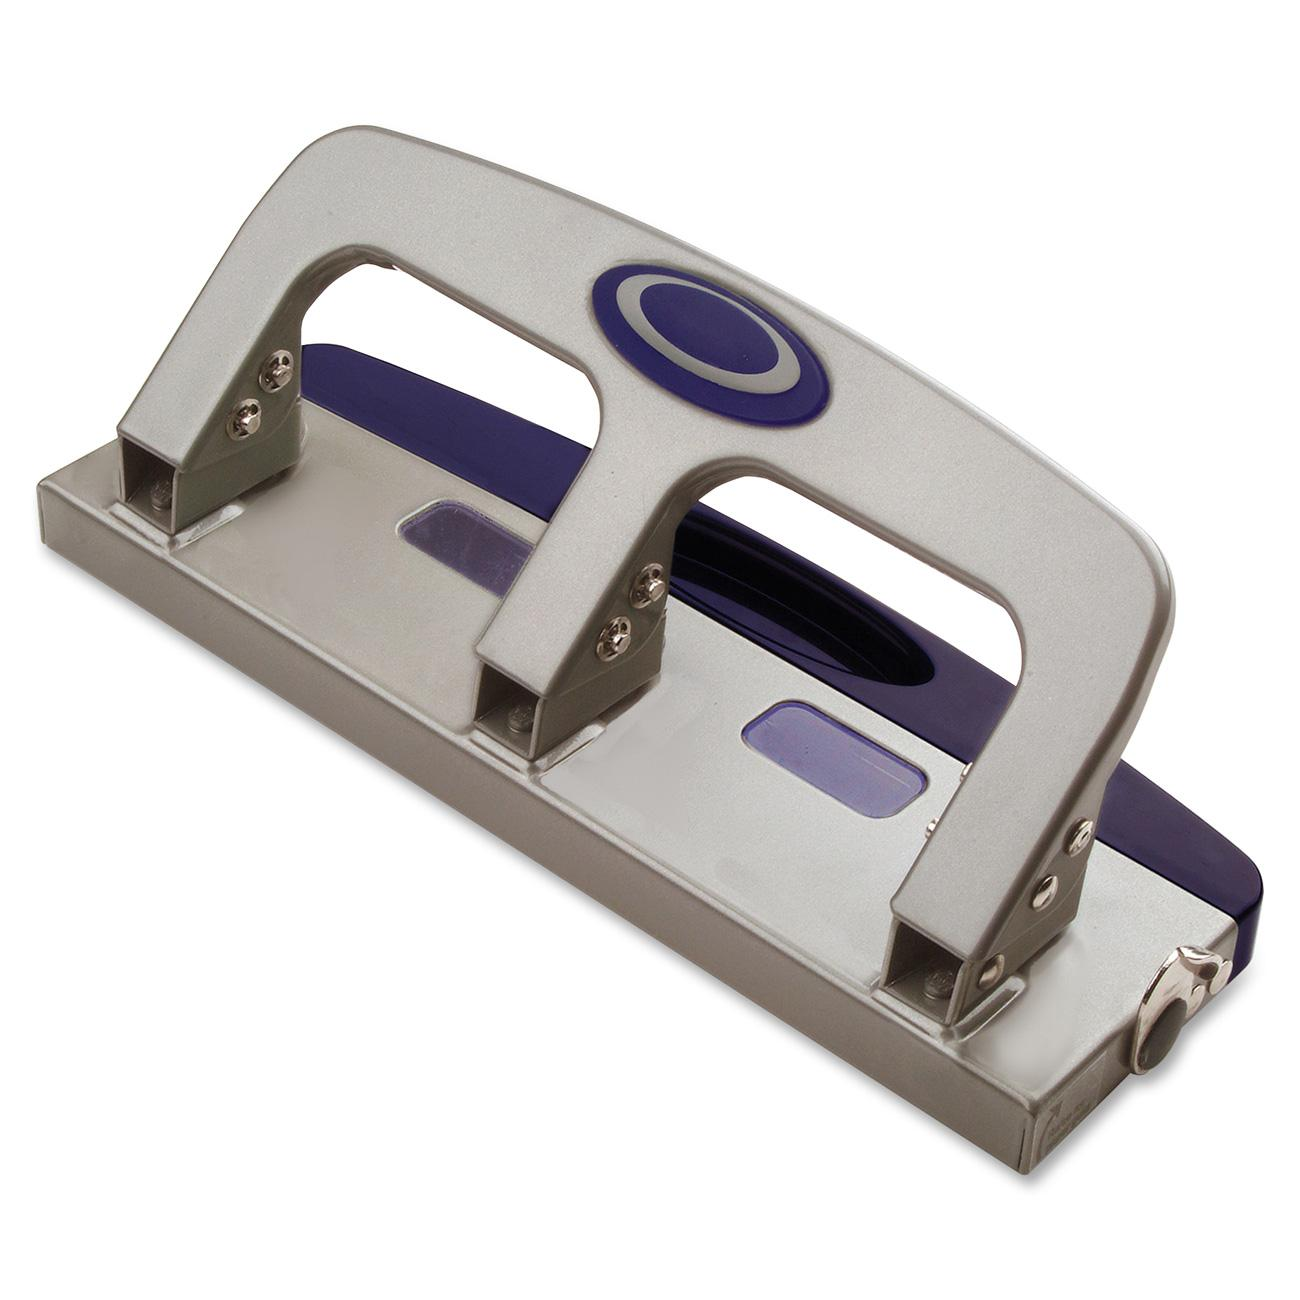 Officemate OIC Deluxe Medium Duty 3-Hole Punch with Chip Drawer, Silver and Navy, 20-Sheet Capacity (90102)